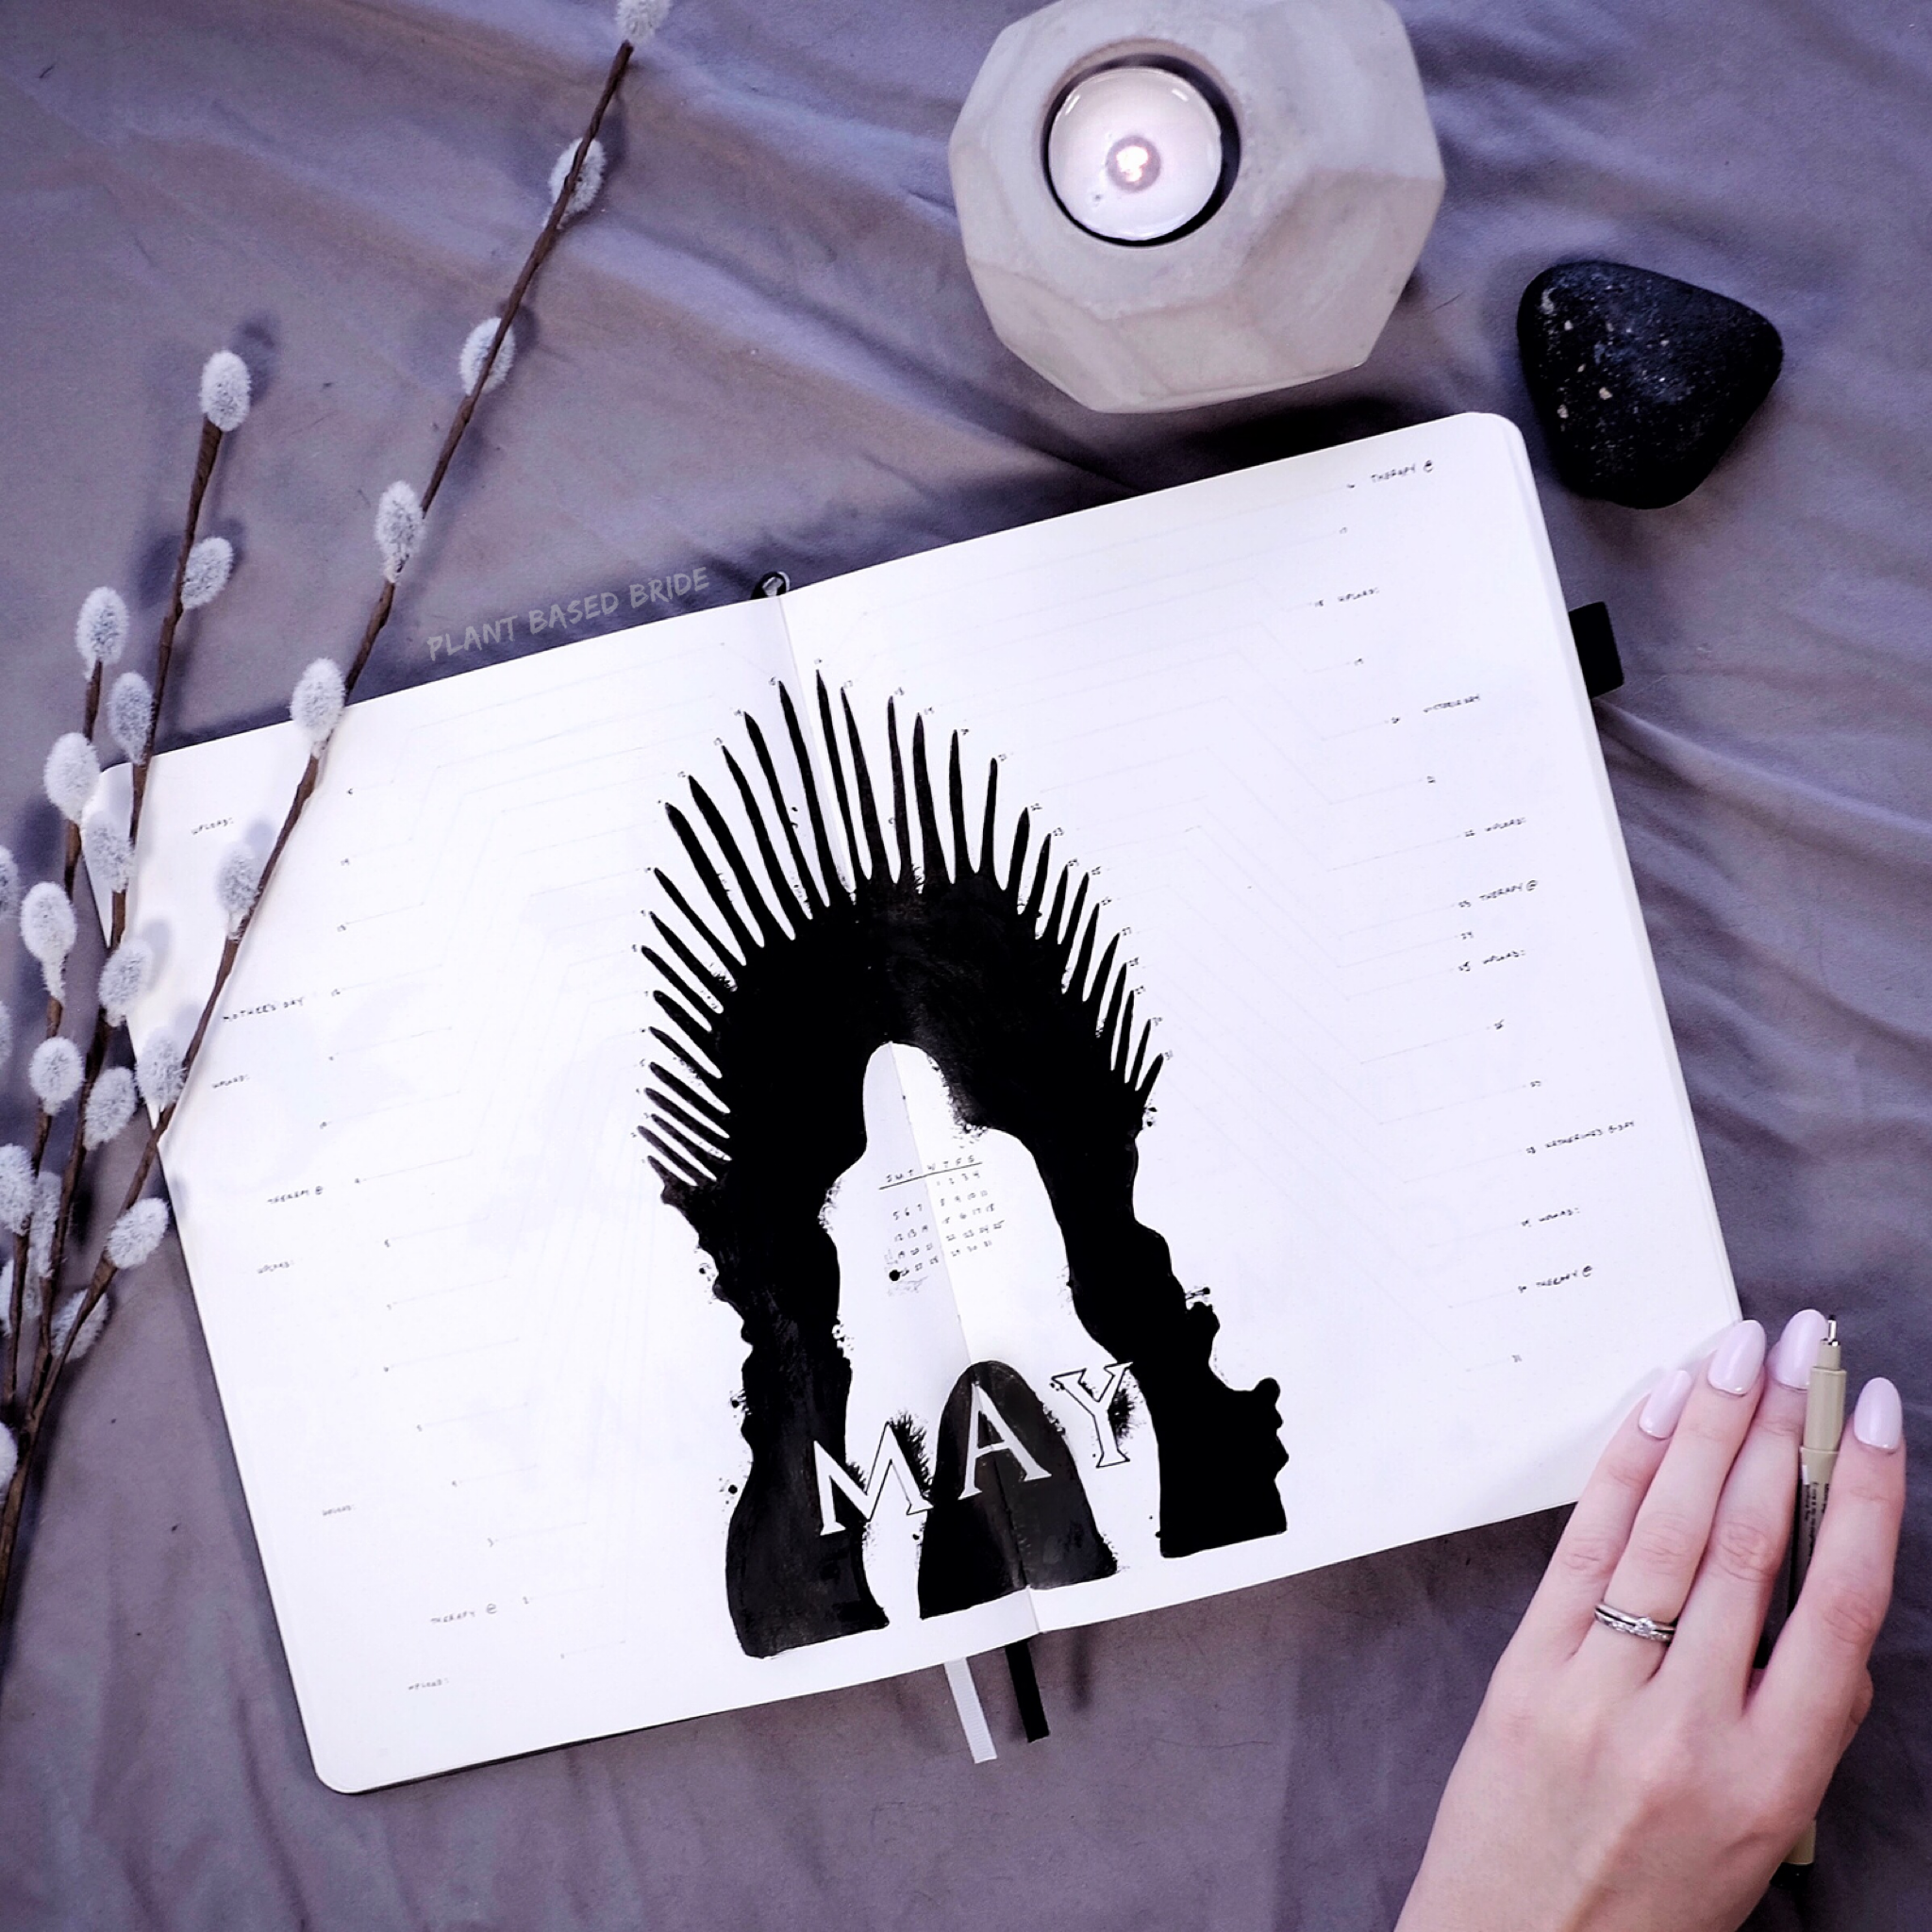 Game of Thrones May 2019 Bullet Journal Plan With Me | Plant Based Bride | Iron Throne Dial Monthly BuJo Ink Drawing